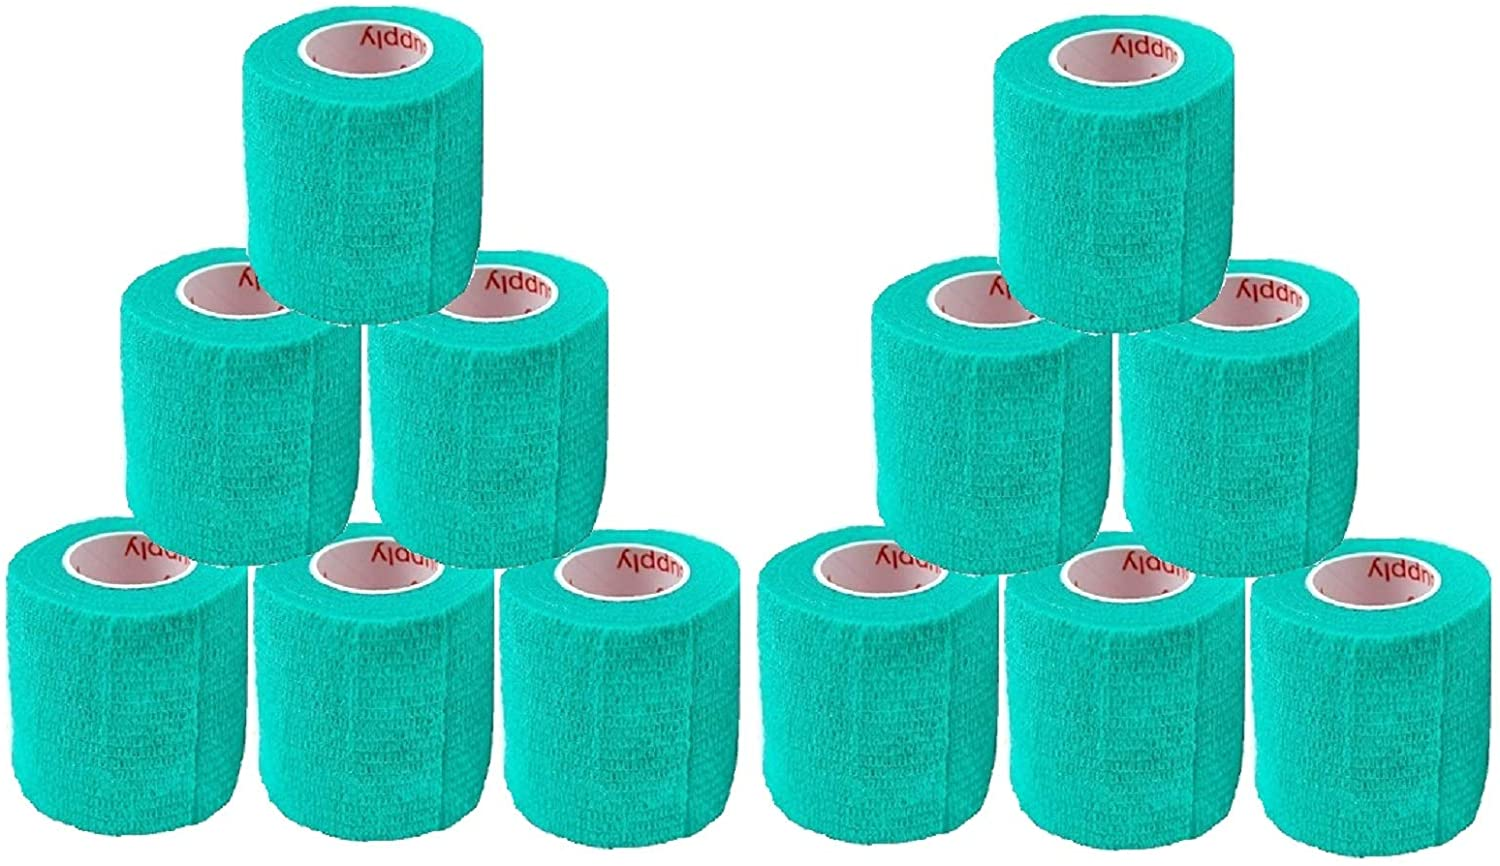 2 Inch Self Adhesive Medical Bandage Wrap Sport Tape (Light Green) (12 Rolls) Self Adherent Cohesive First Aid Sport Flex Wrist Ankle Knee Sprains and Swelling